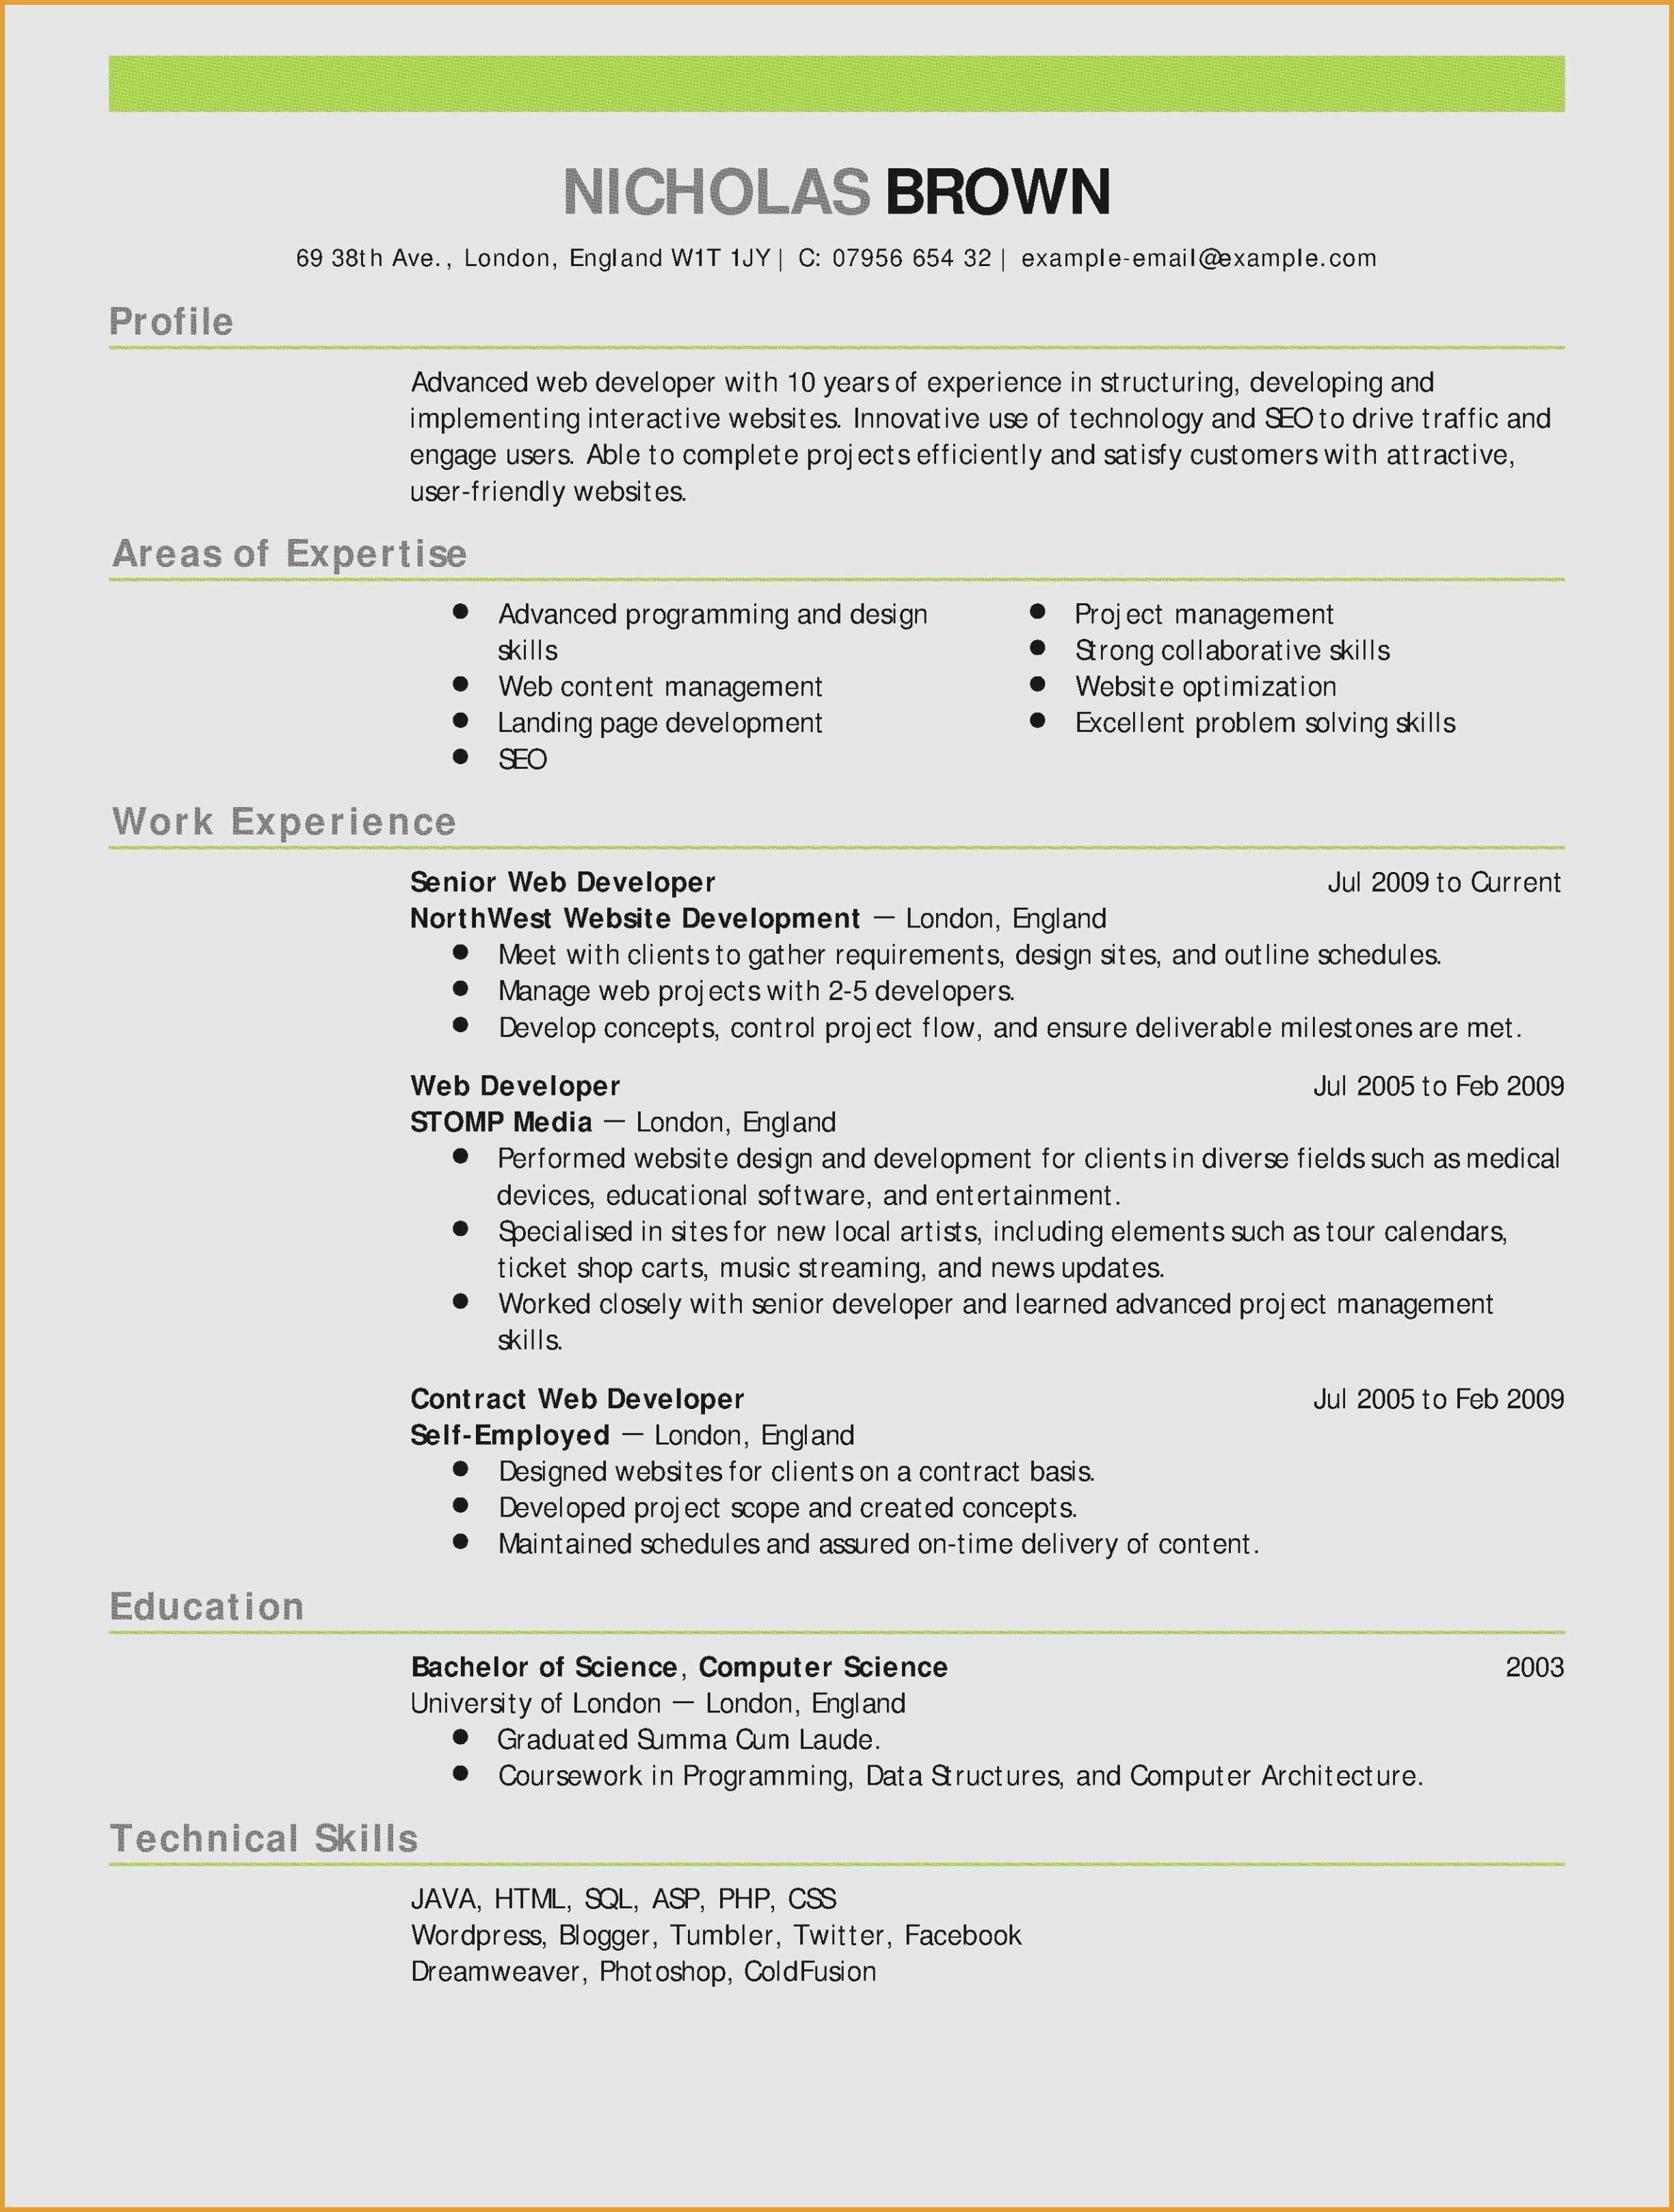 Fishing Resume Template - Resume for A Server Server Skills Resume Fresh Skills for A Resume